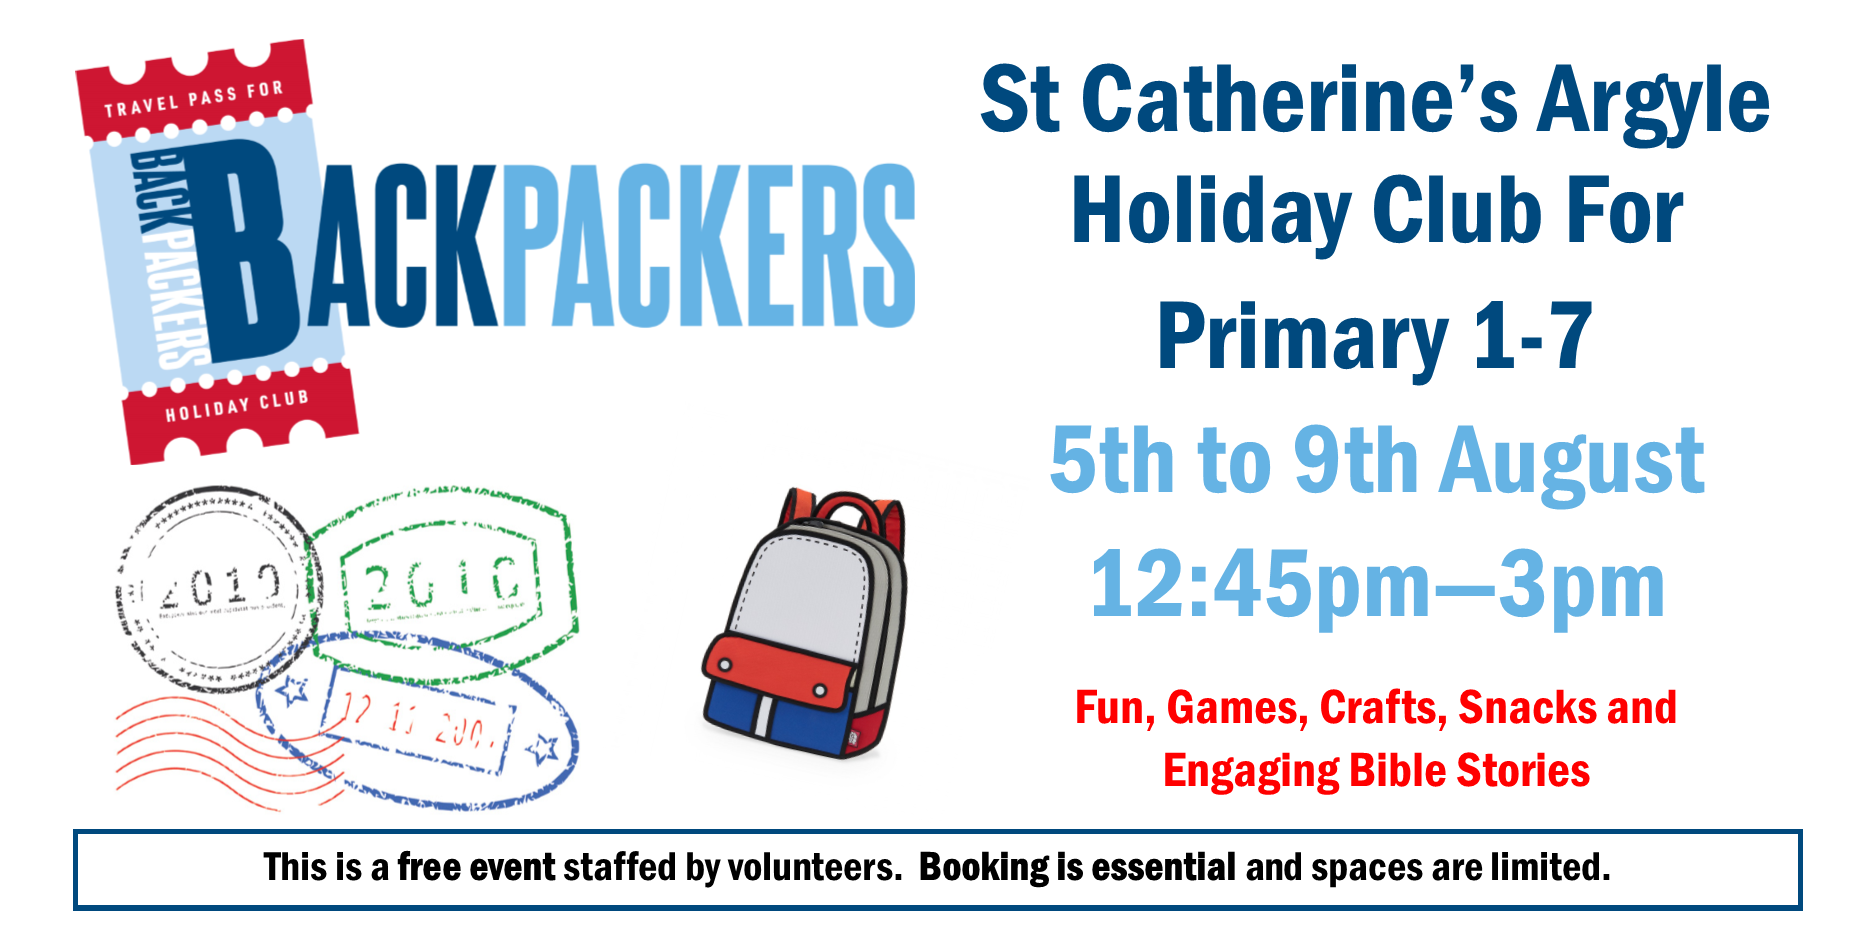 St Catherine's Argyle Holiday Club For Primary 1-7 5th to 9th August 12:45pm—3pm